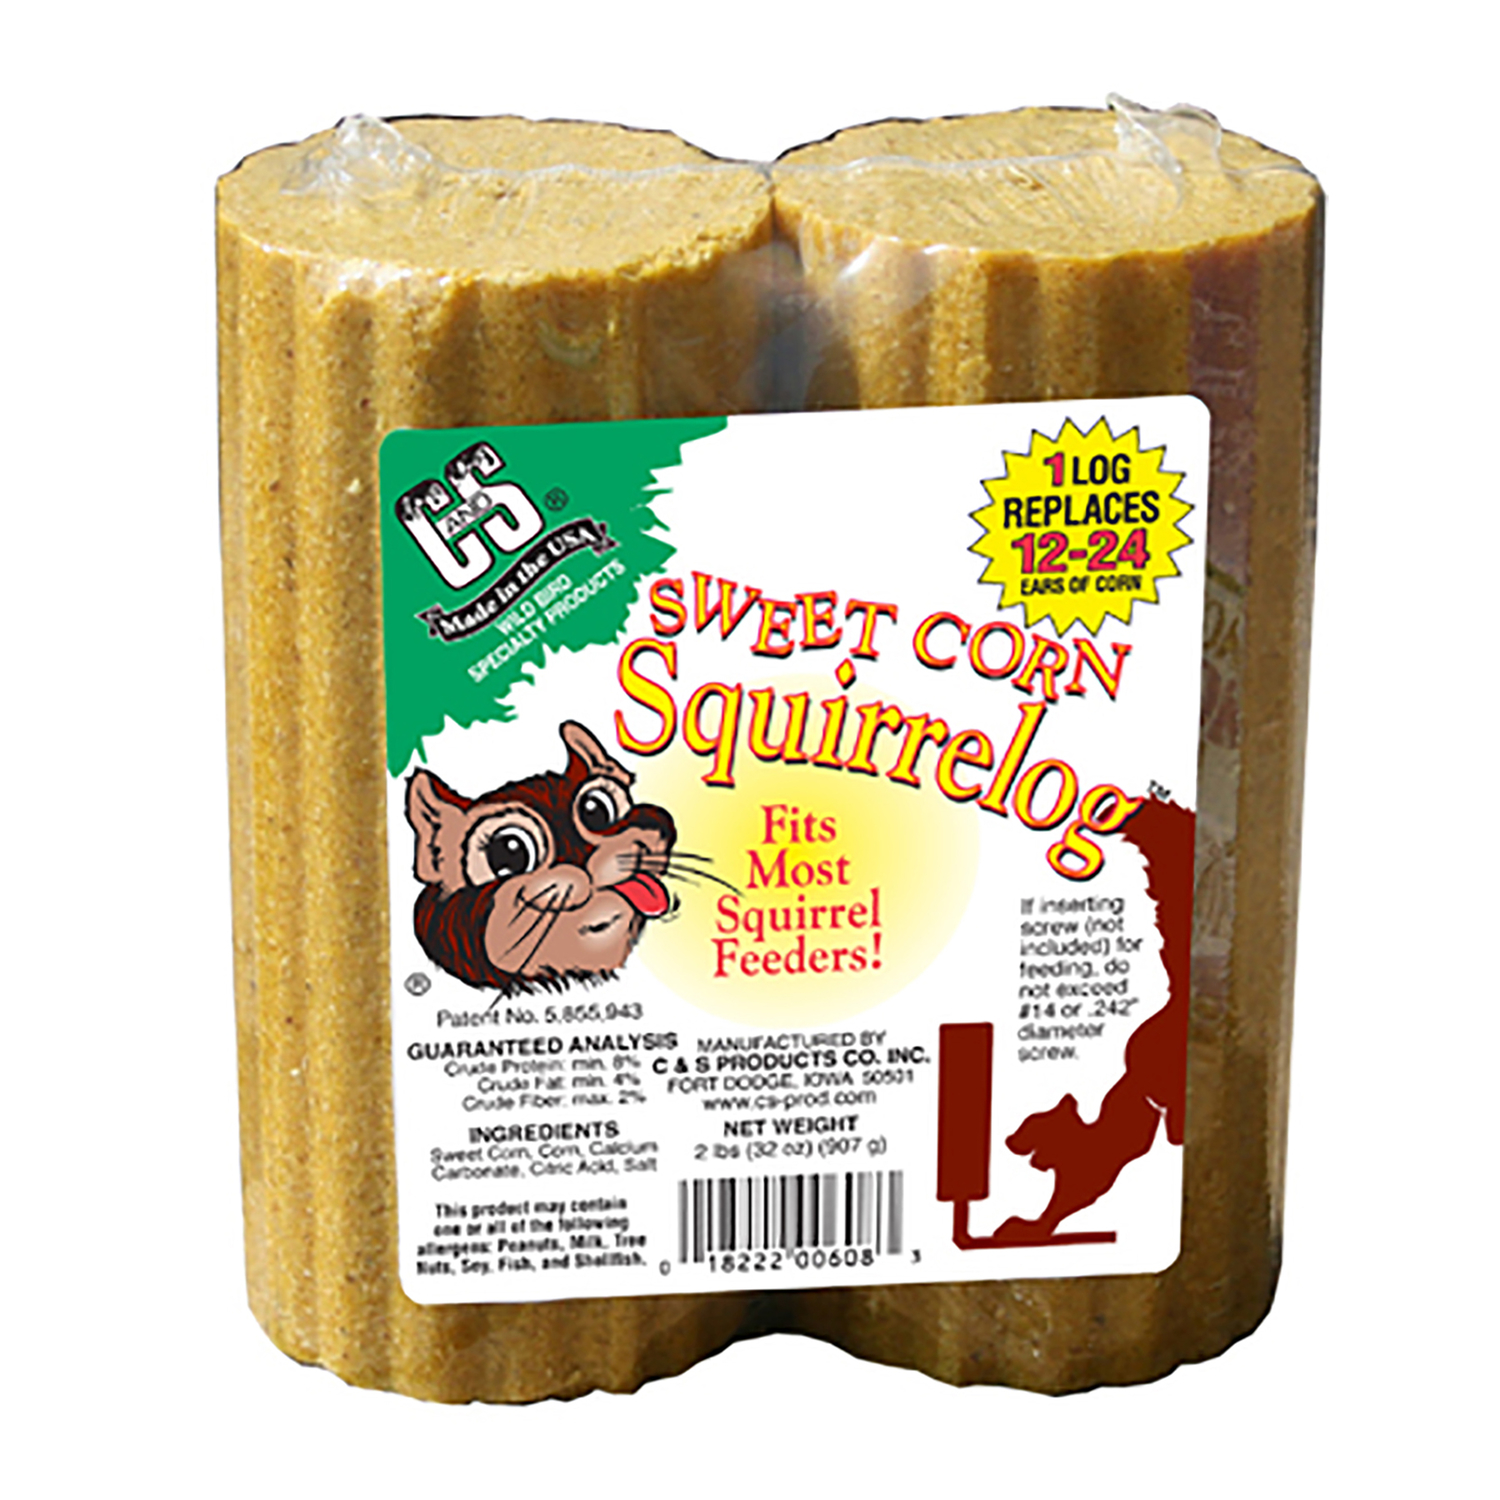 C&S Products  Sweet Corn Squirrelog  Wildlife  Squirrel and Critter Food  Corn  32 oz.